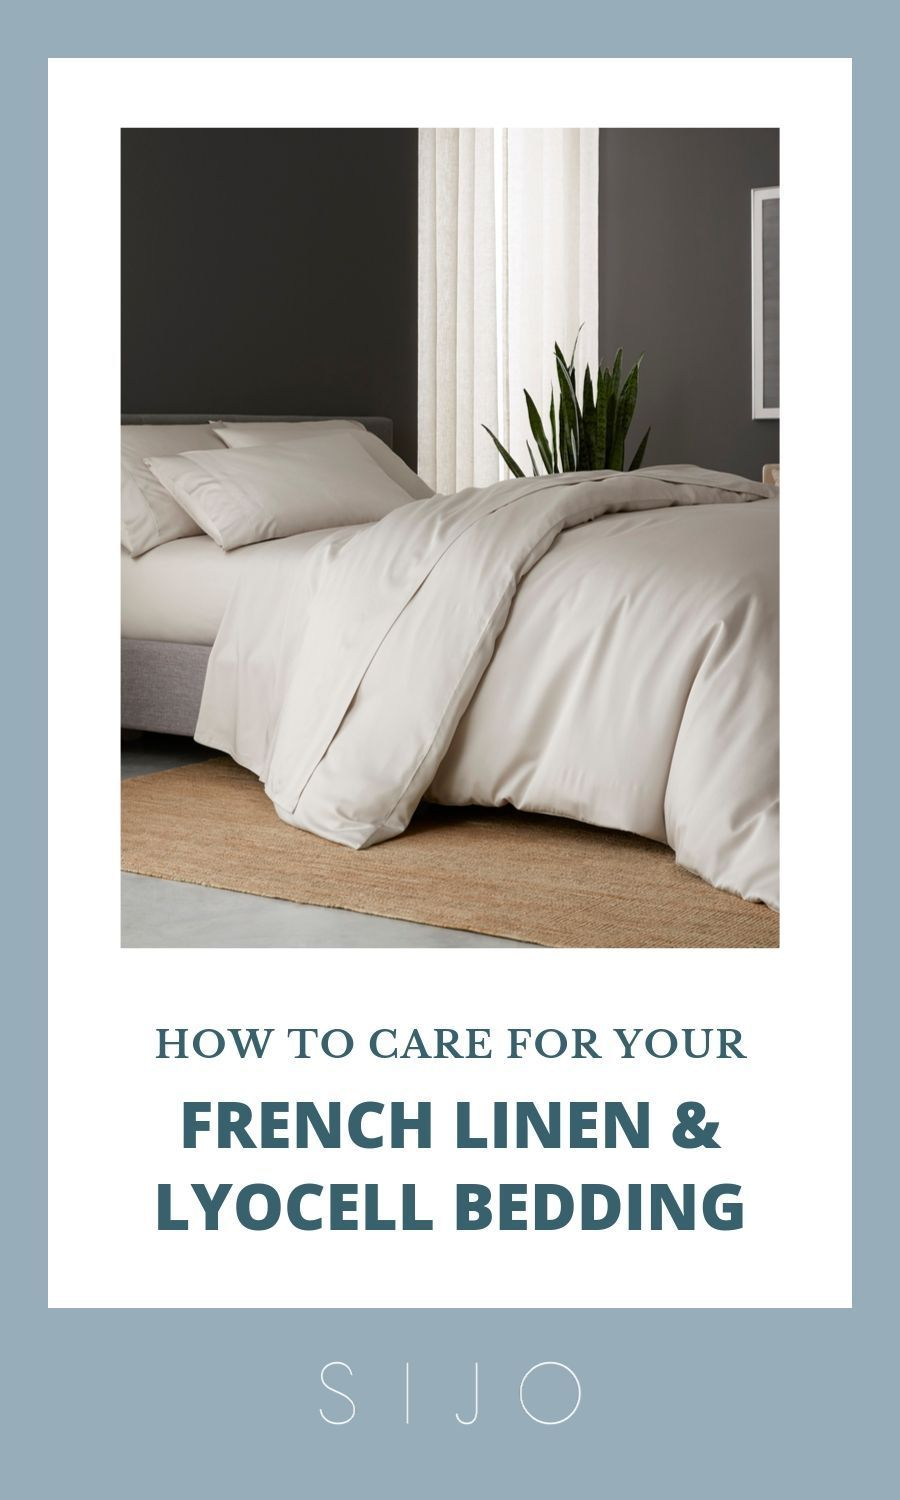 How To Care For Your Sijo Bedding Bed Make Your Bed Bedroom